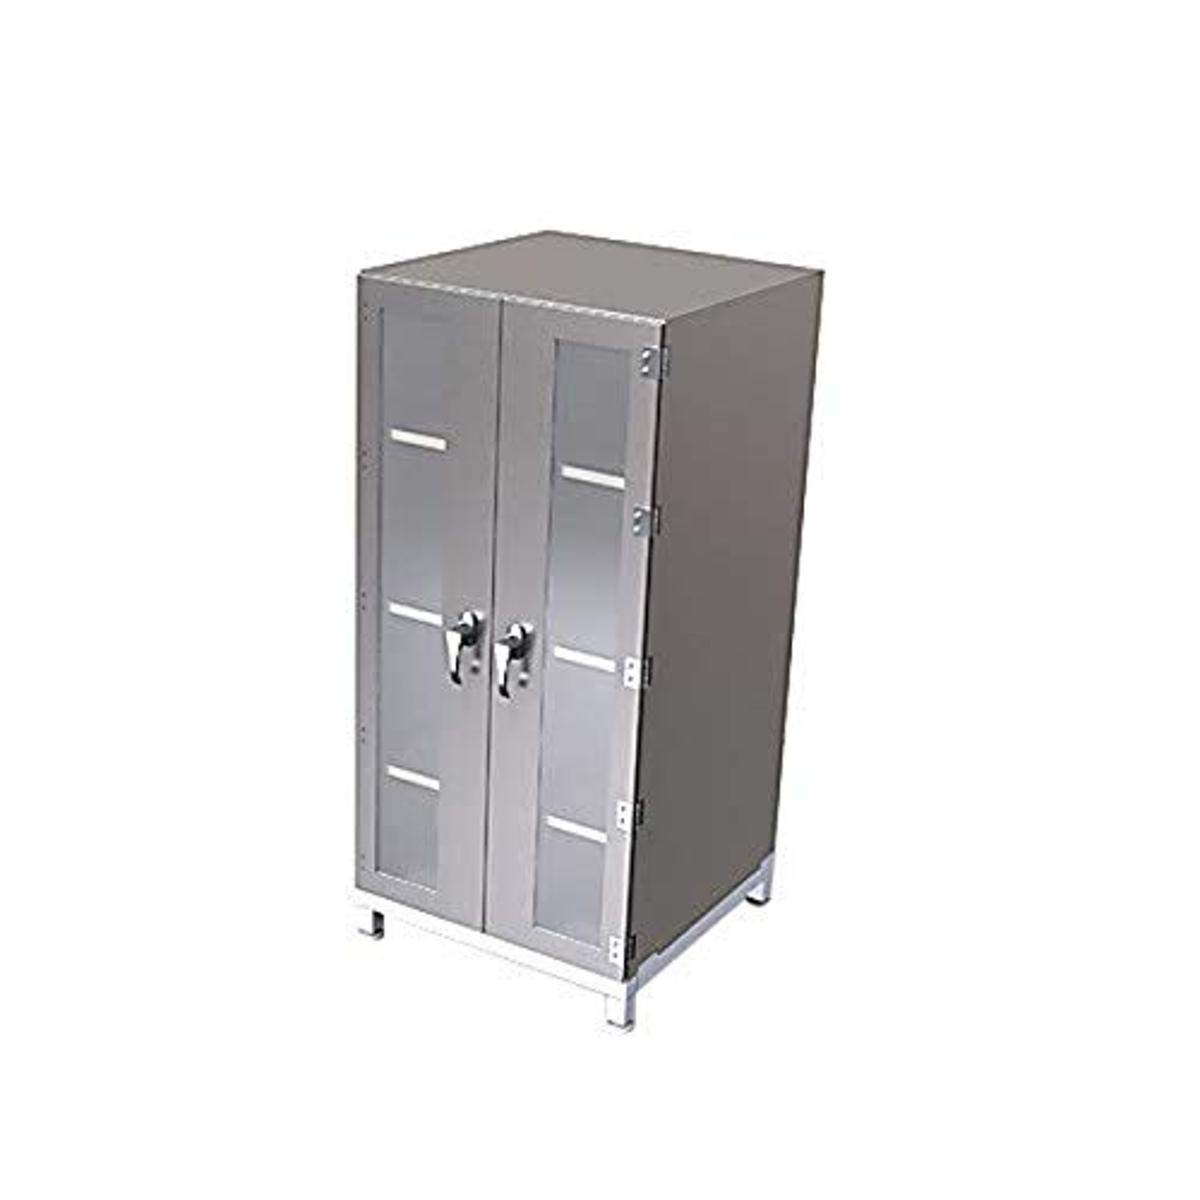 Sapphire 1 year warranty Cleanrooms Sacramento Mall SCP-NB-312 Storage Without 3 Cabinet Blower